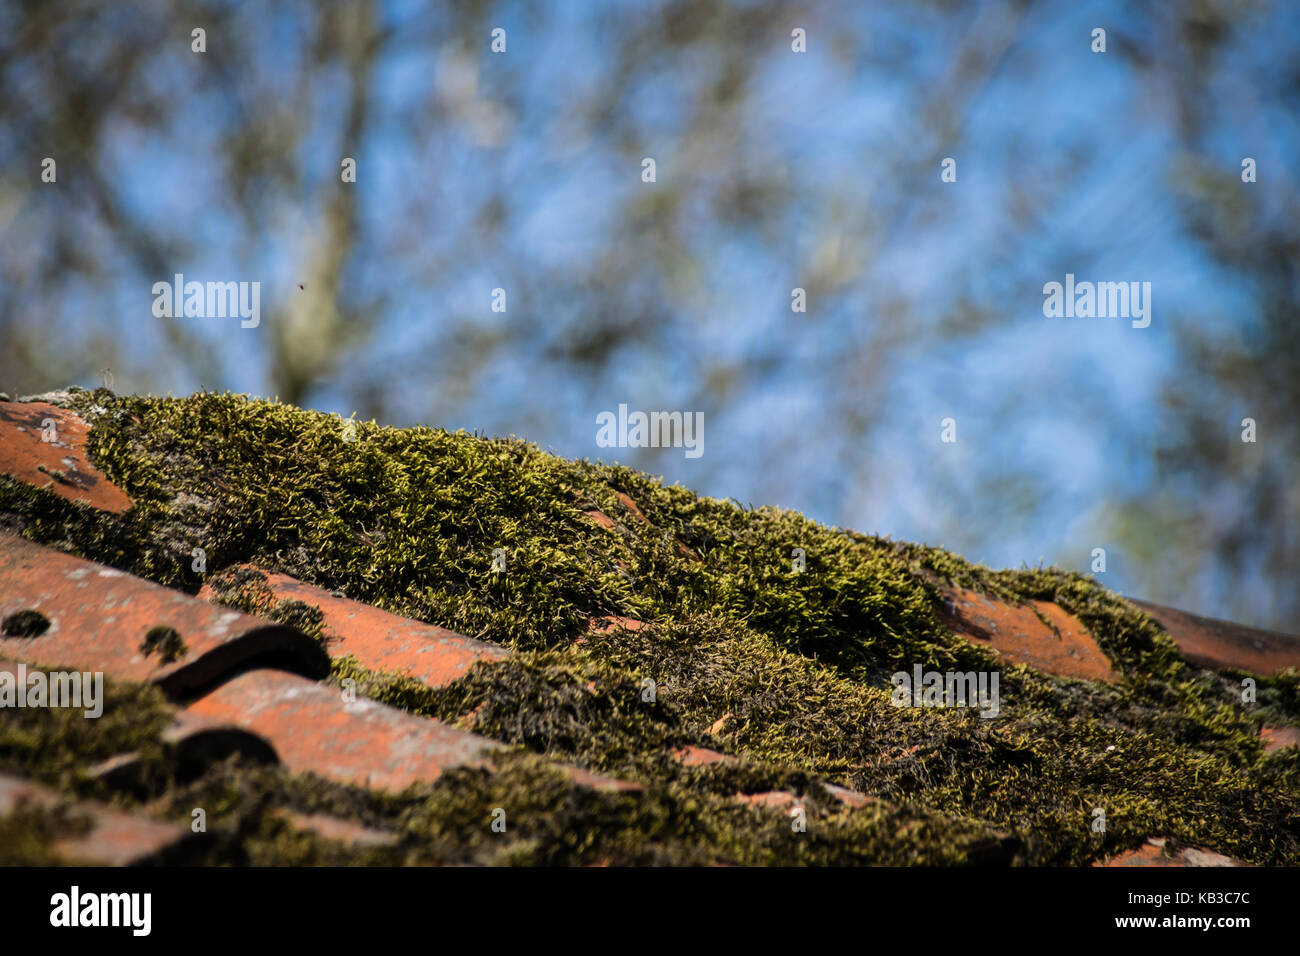 Moss Growing On Roof Tiles   Stock Image